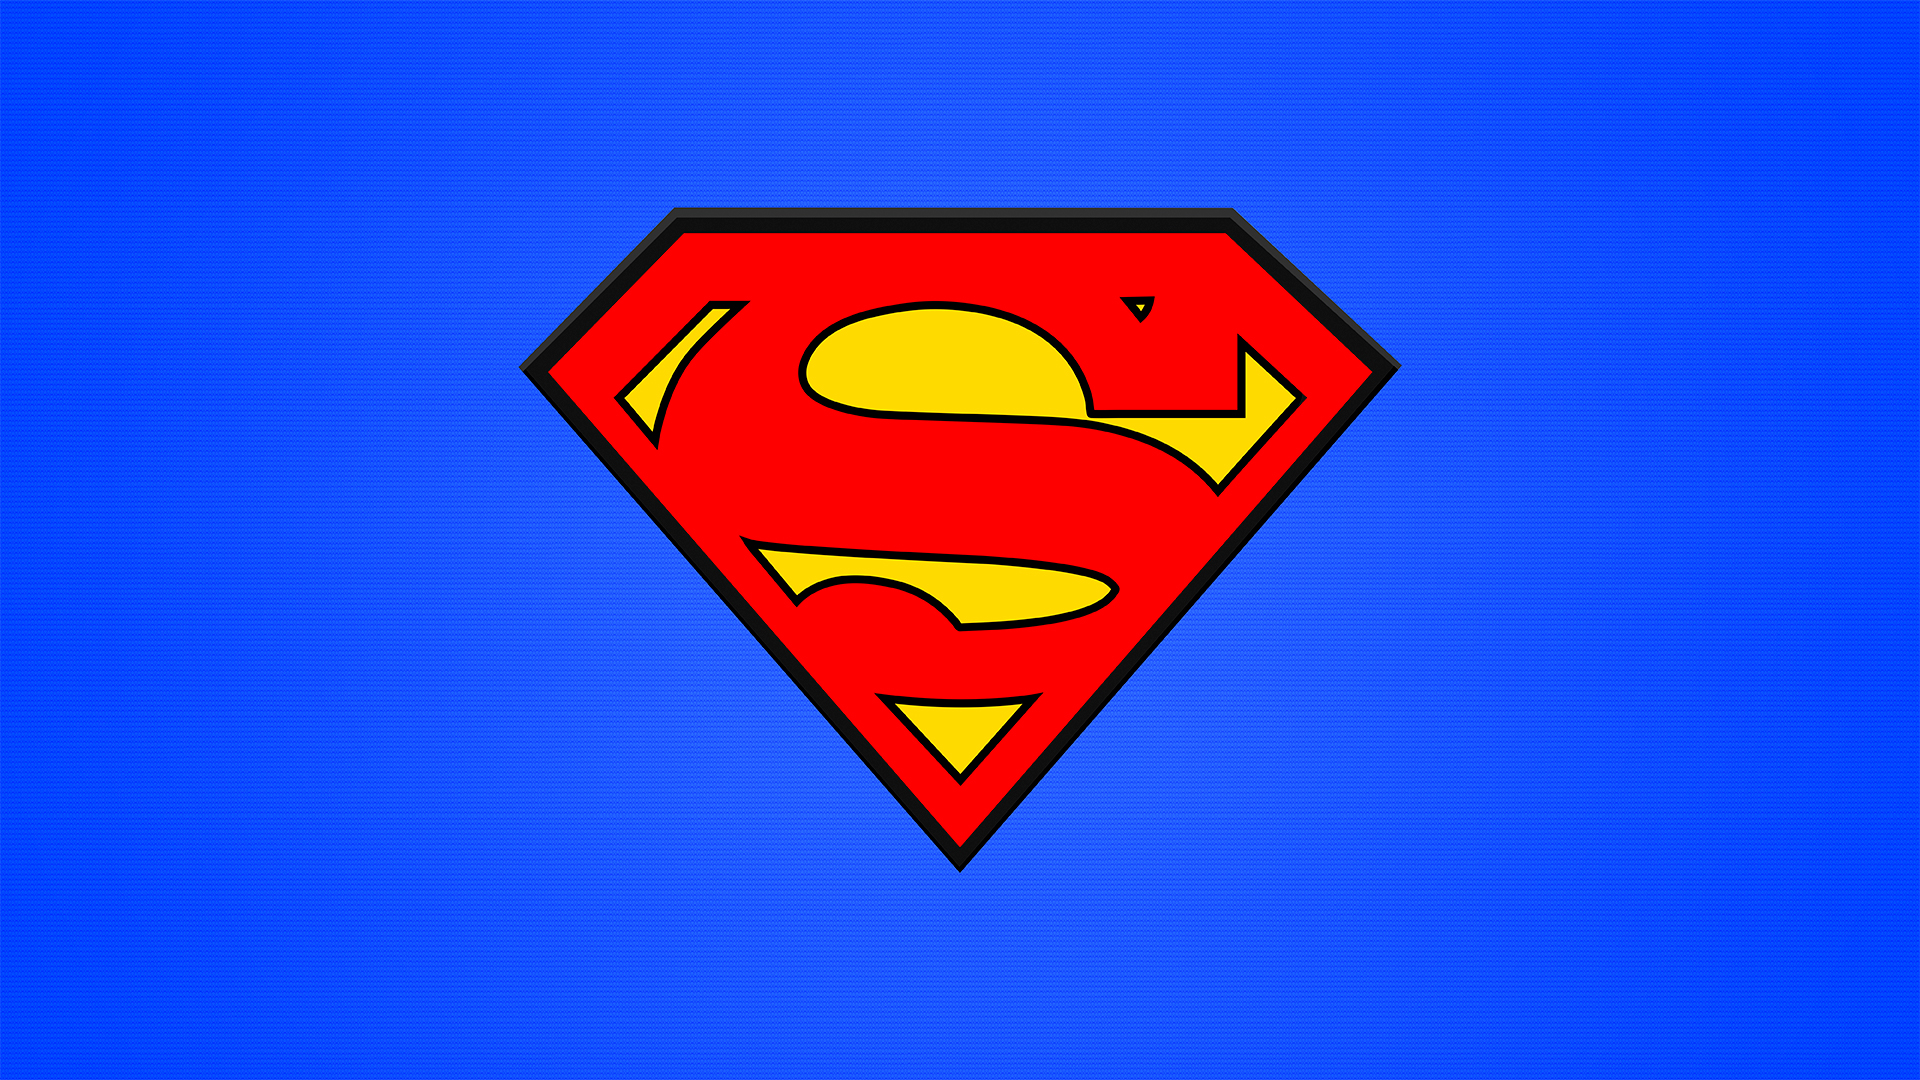 Superman Logo On A Blue Background Themes10 Win